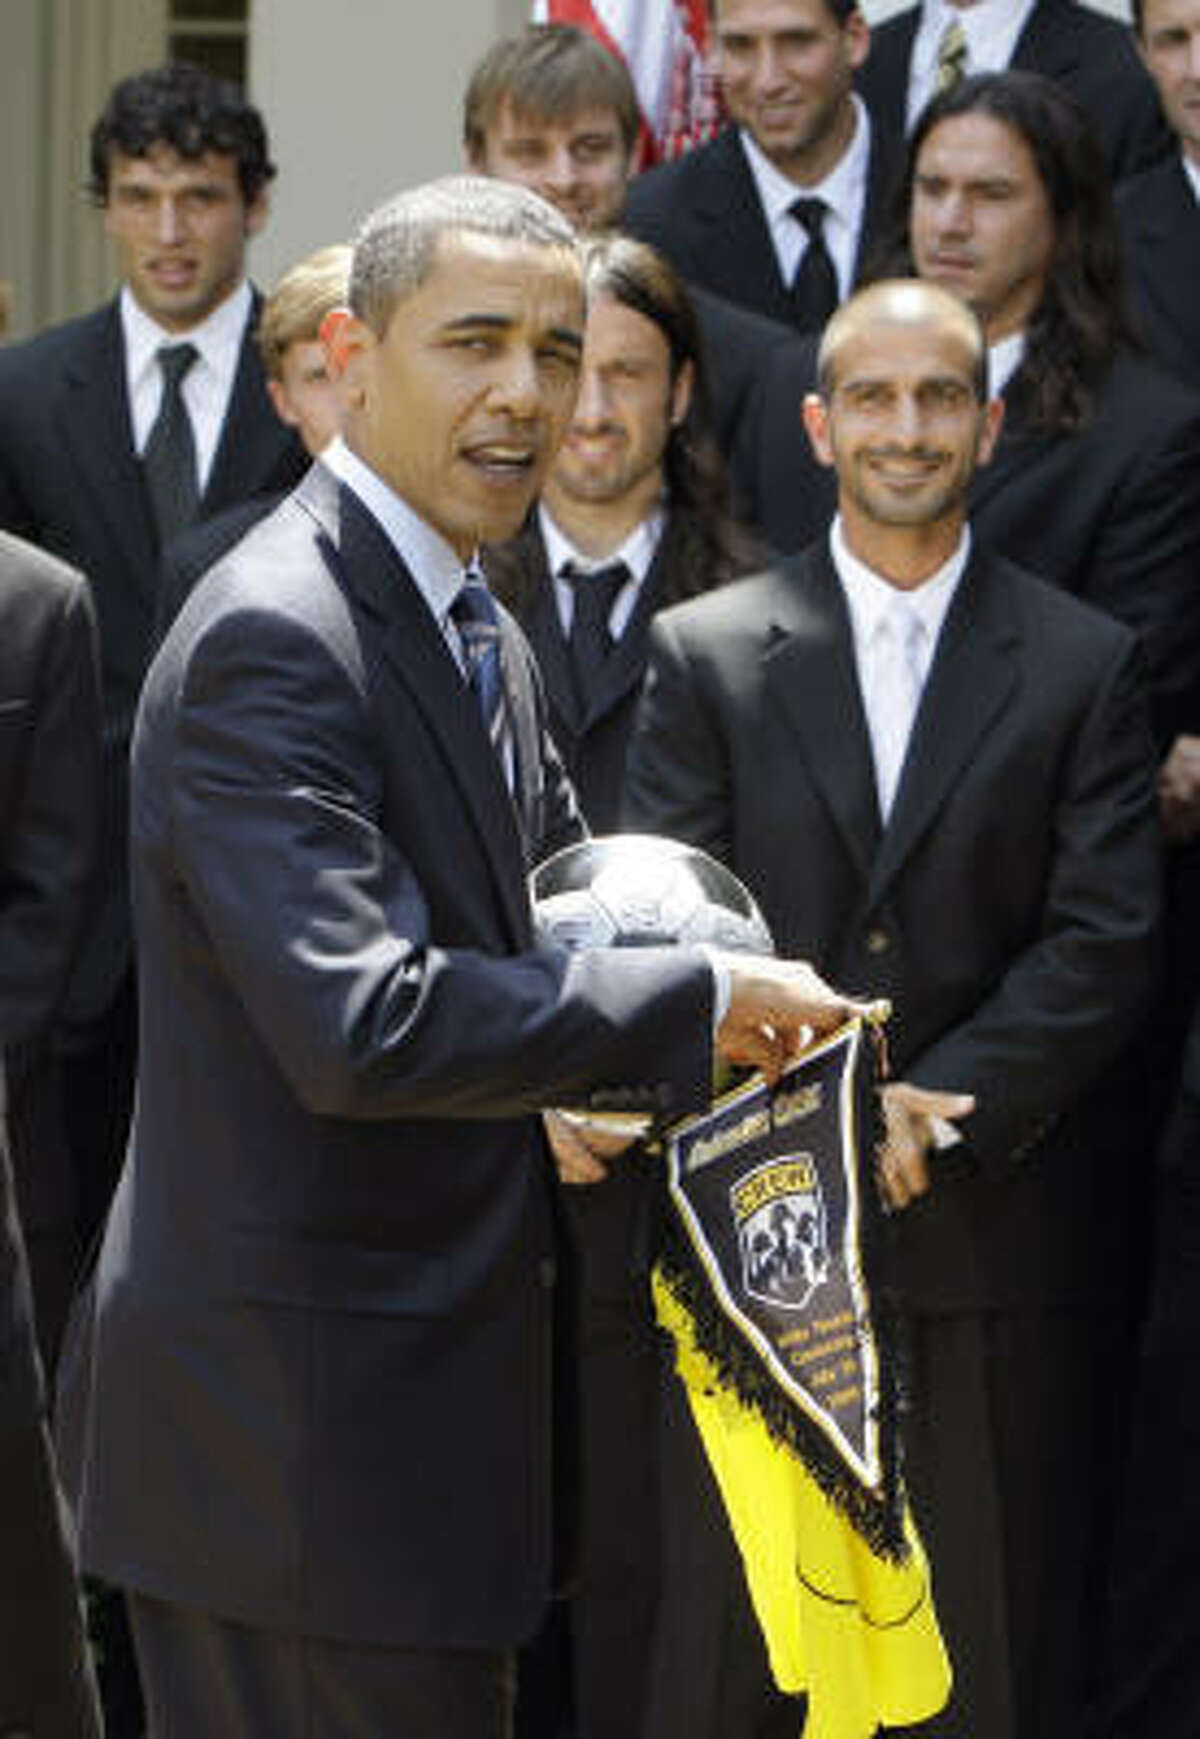 President Barack Obama collects a jersey, a ball and a pennant from the Crew.